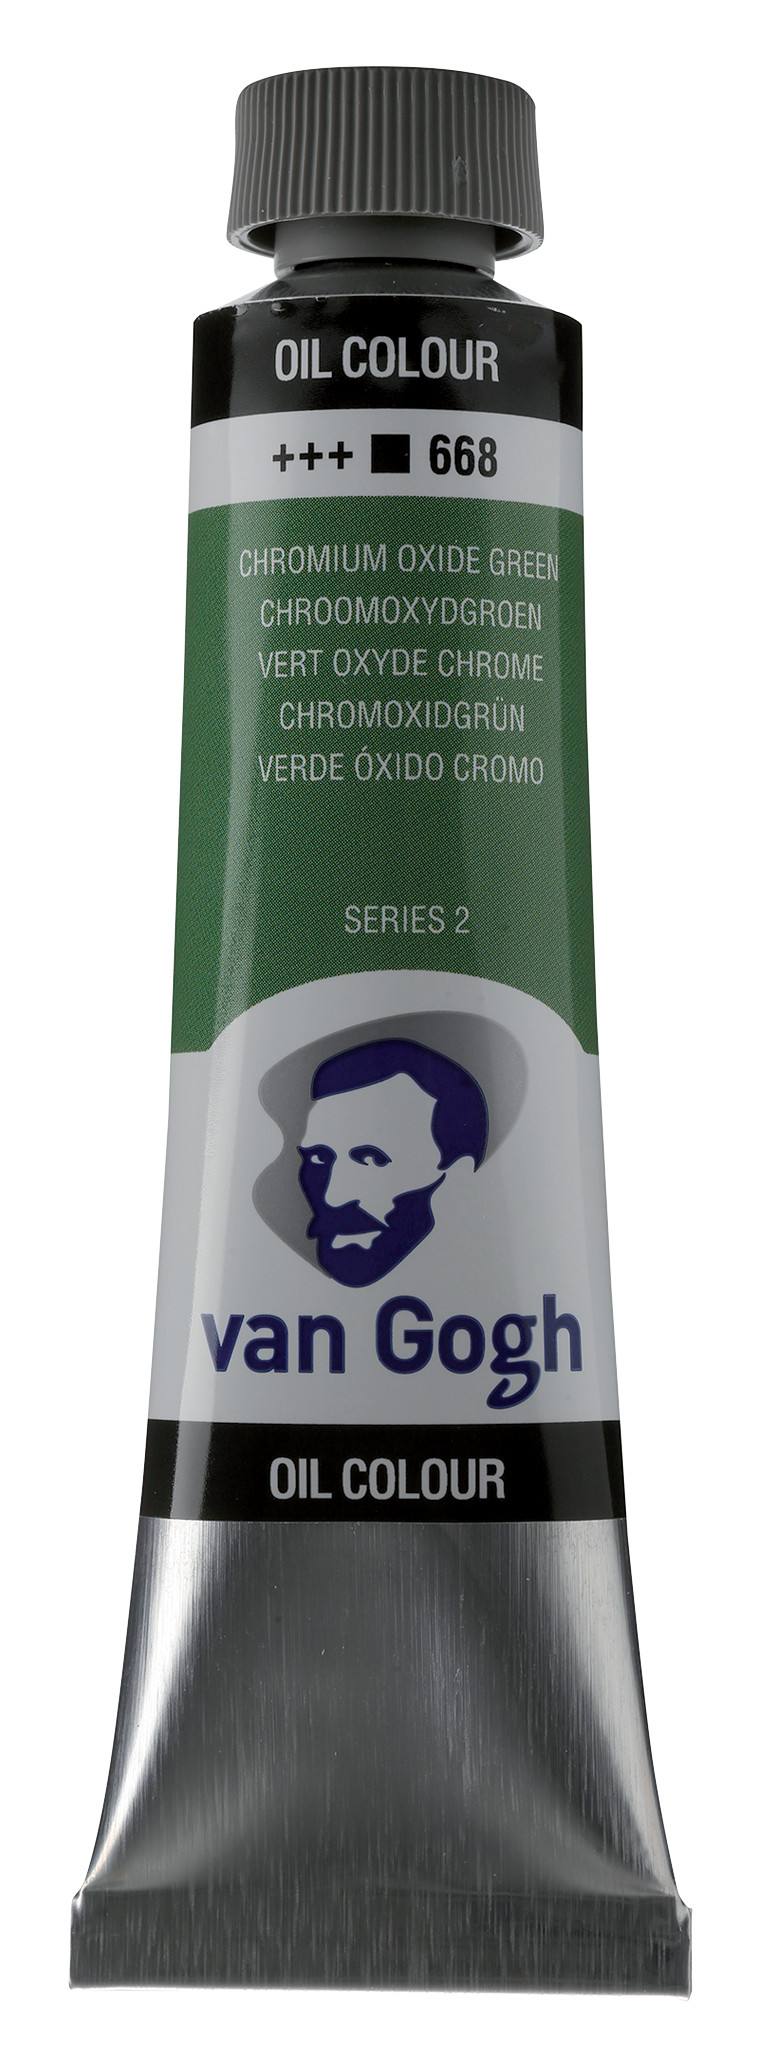 Van Gogh Oil Colour Tube 40 ml Chromium Oxide Green  668